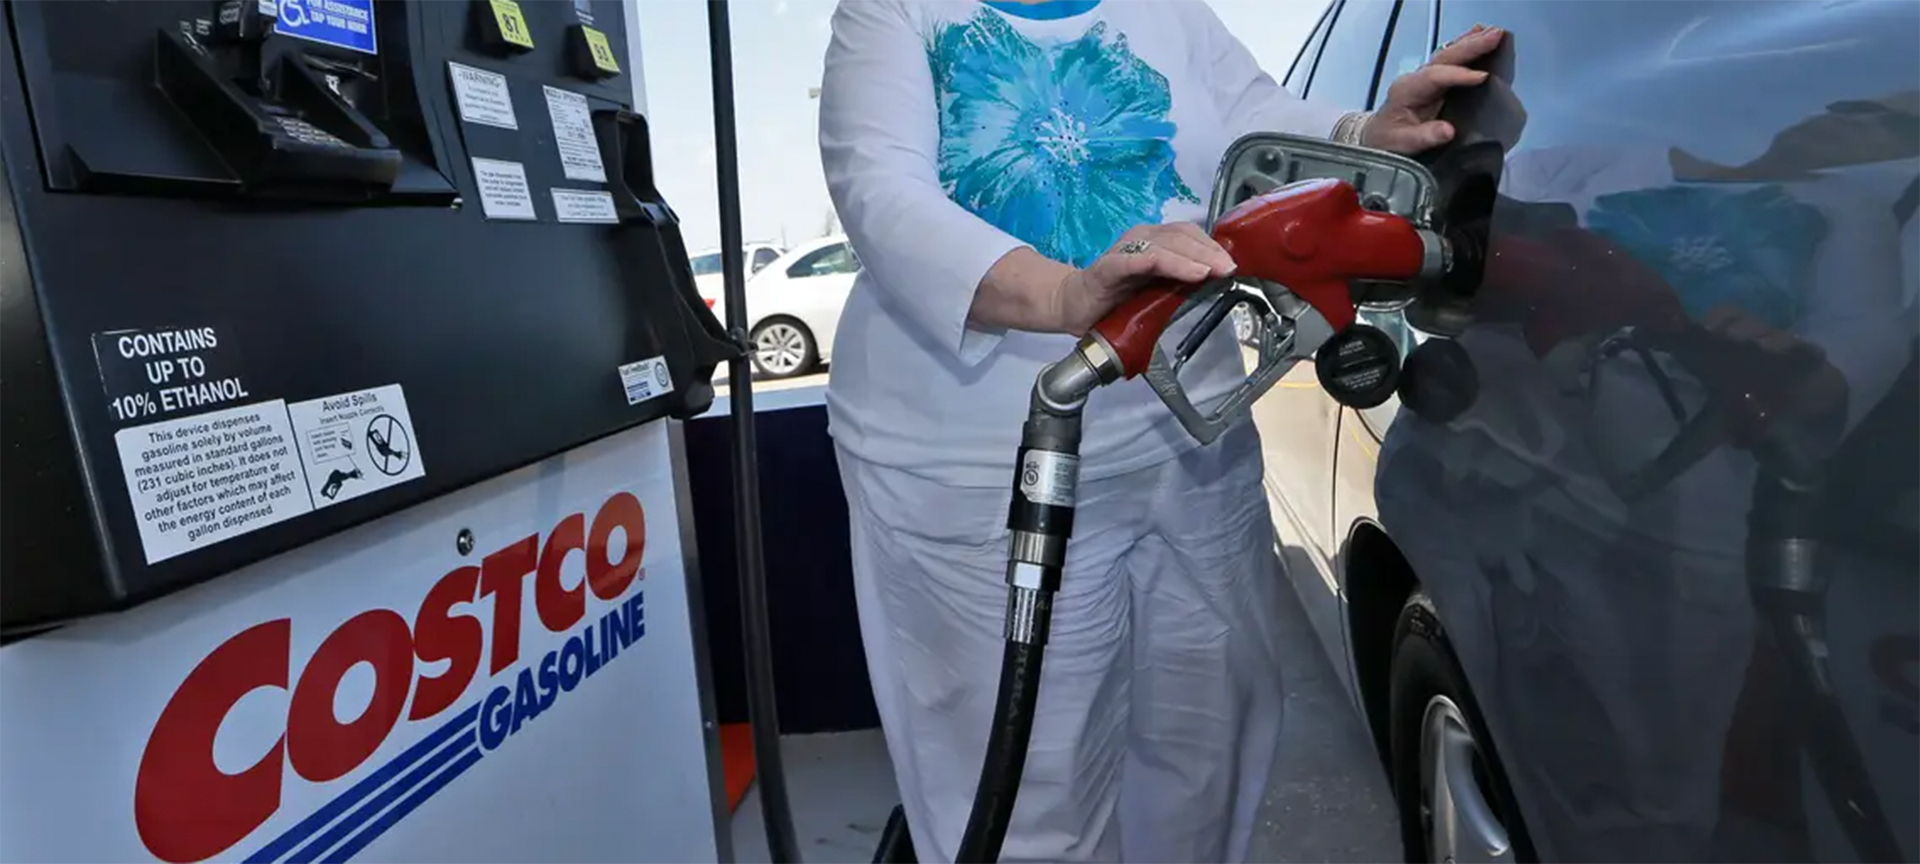 Gas, not petrol, is what powers your rental car, unless it's an all-electric vehicle of course. Sold in gallons rather than liters, the low price is a dream for those who are used to buying fuel in liters and paying eye-watering taxes. When you need a top-up, remember to look for a gas station, not a garage!